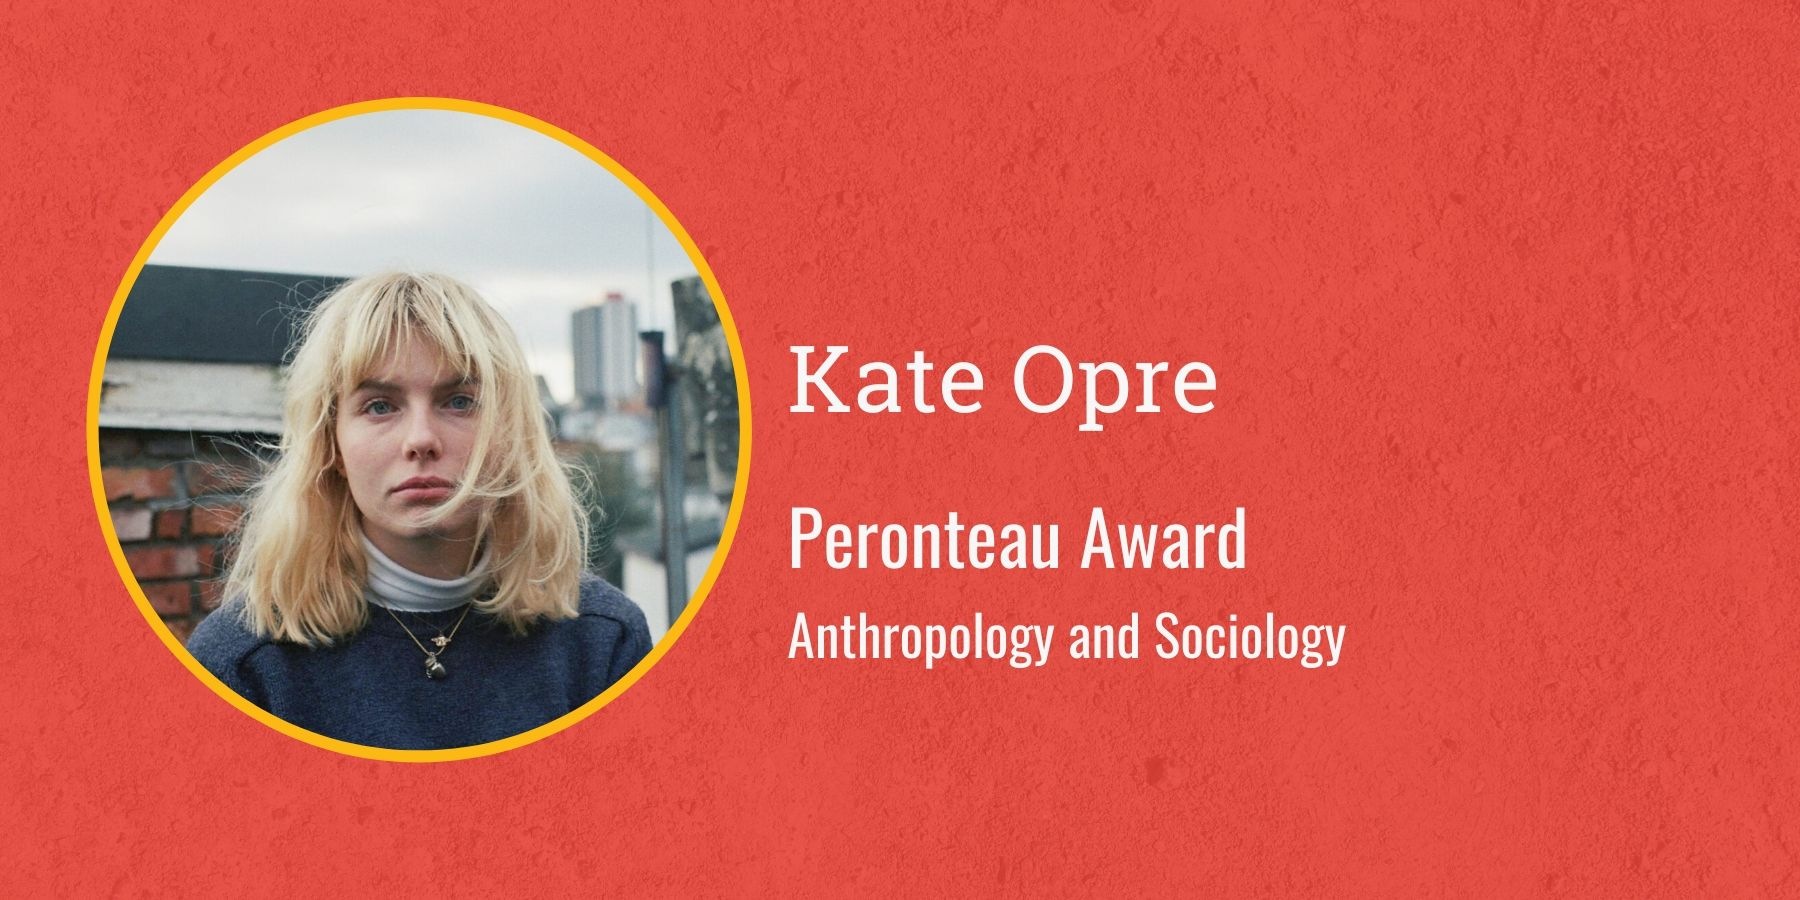 Photo of Kate Opre with text Peronteau Award, Anthropology and Sociology